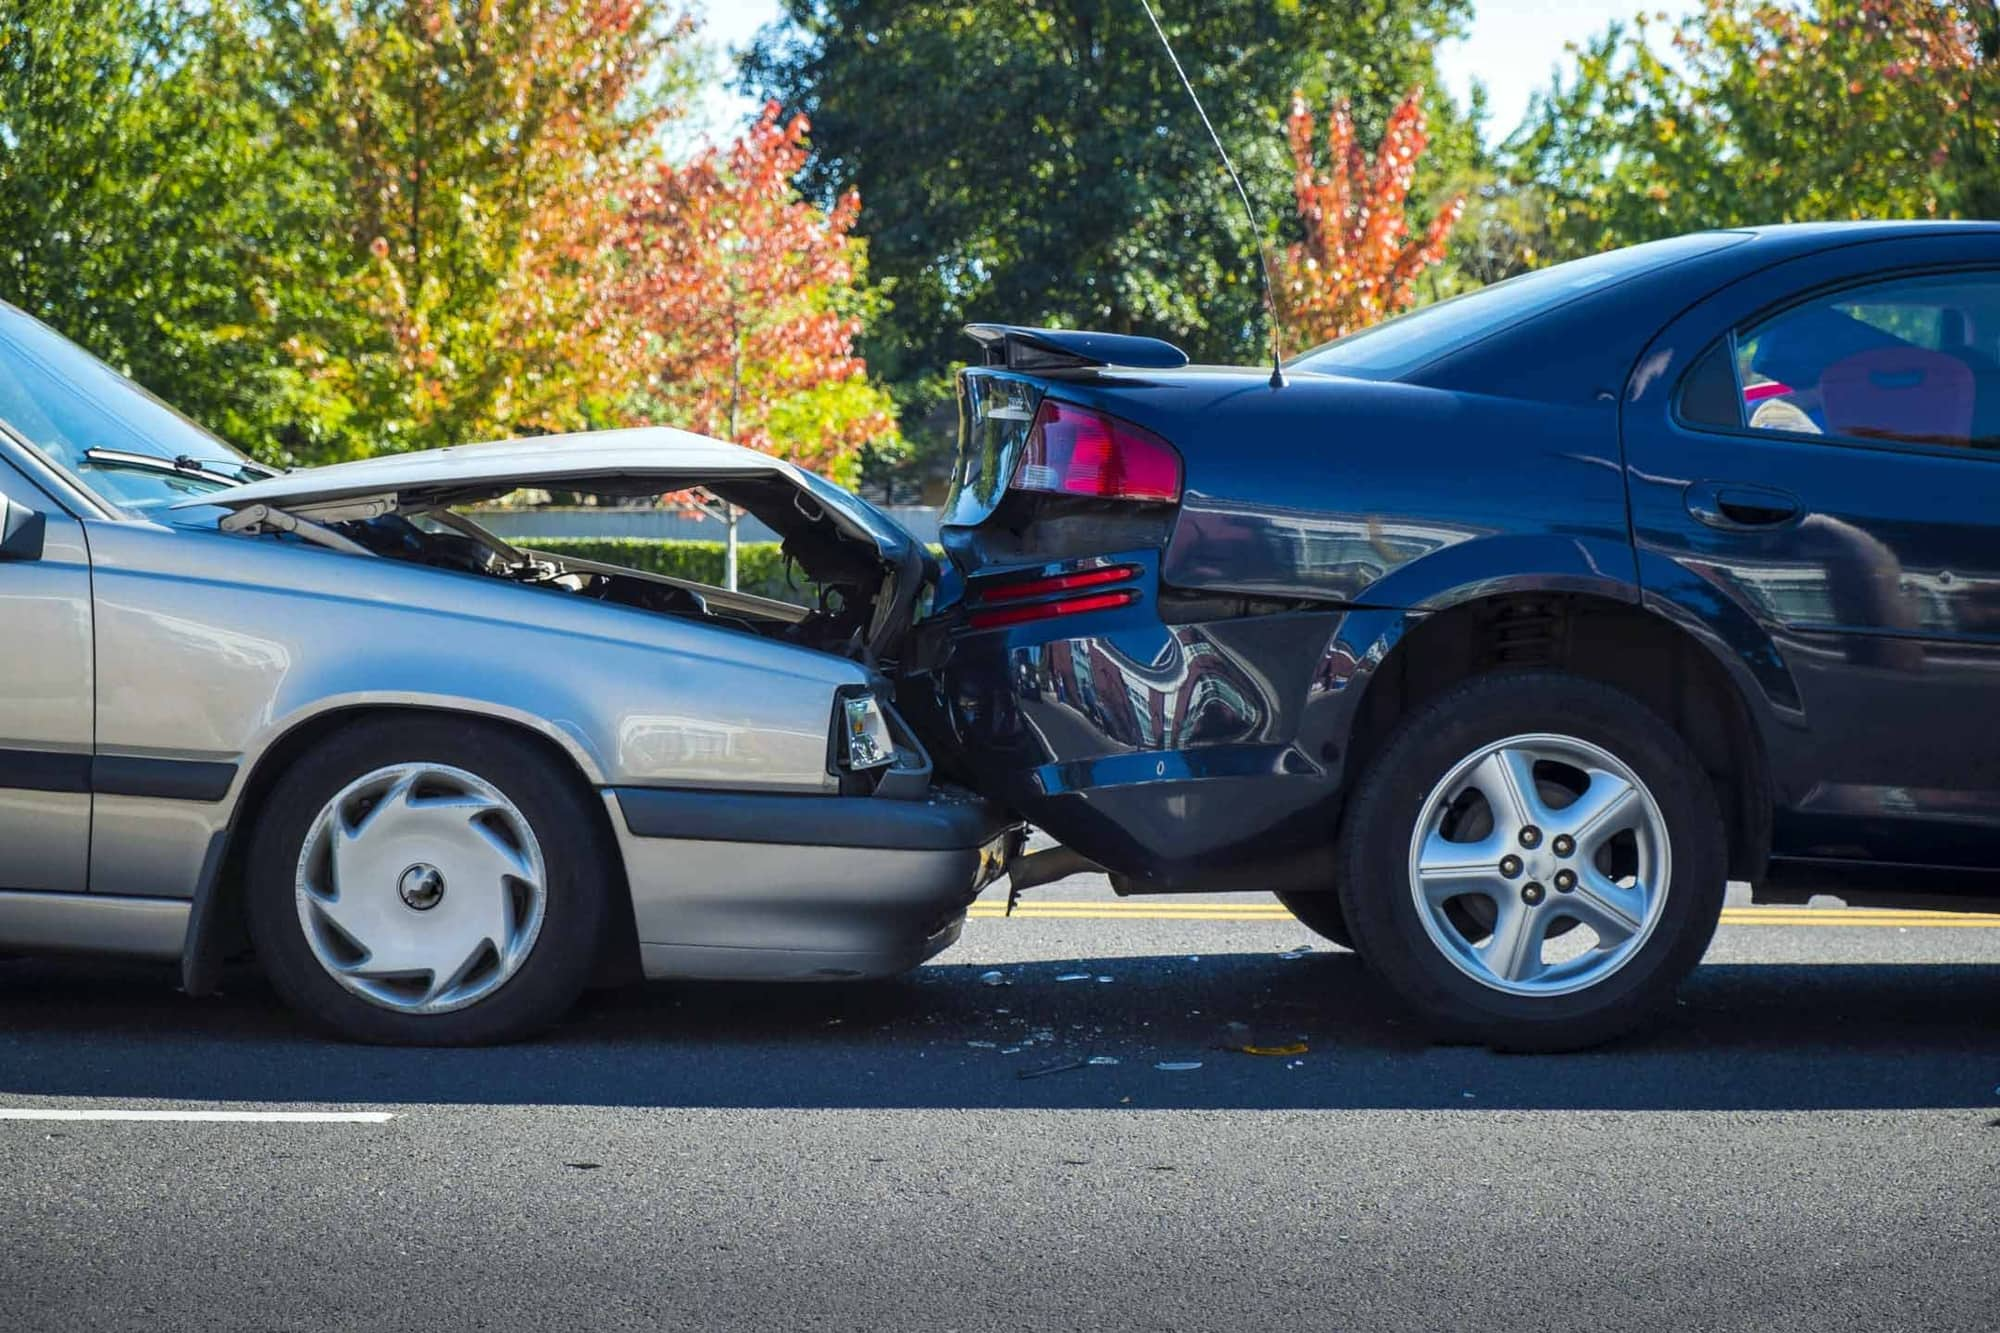 Personal Injury Accident Attorney Los Angeles, CA